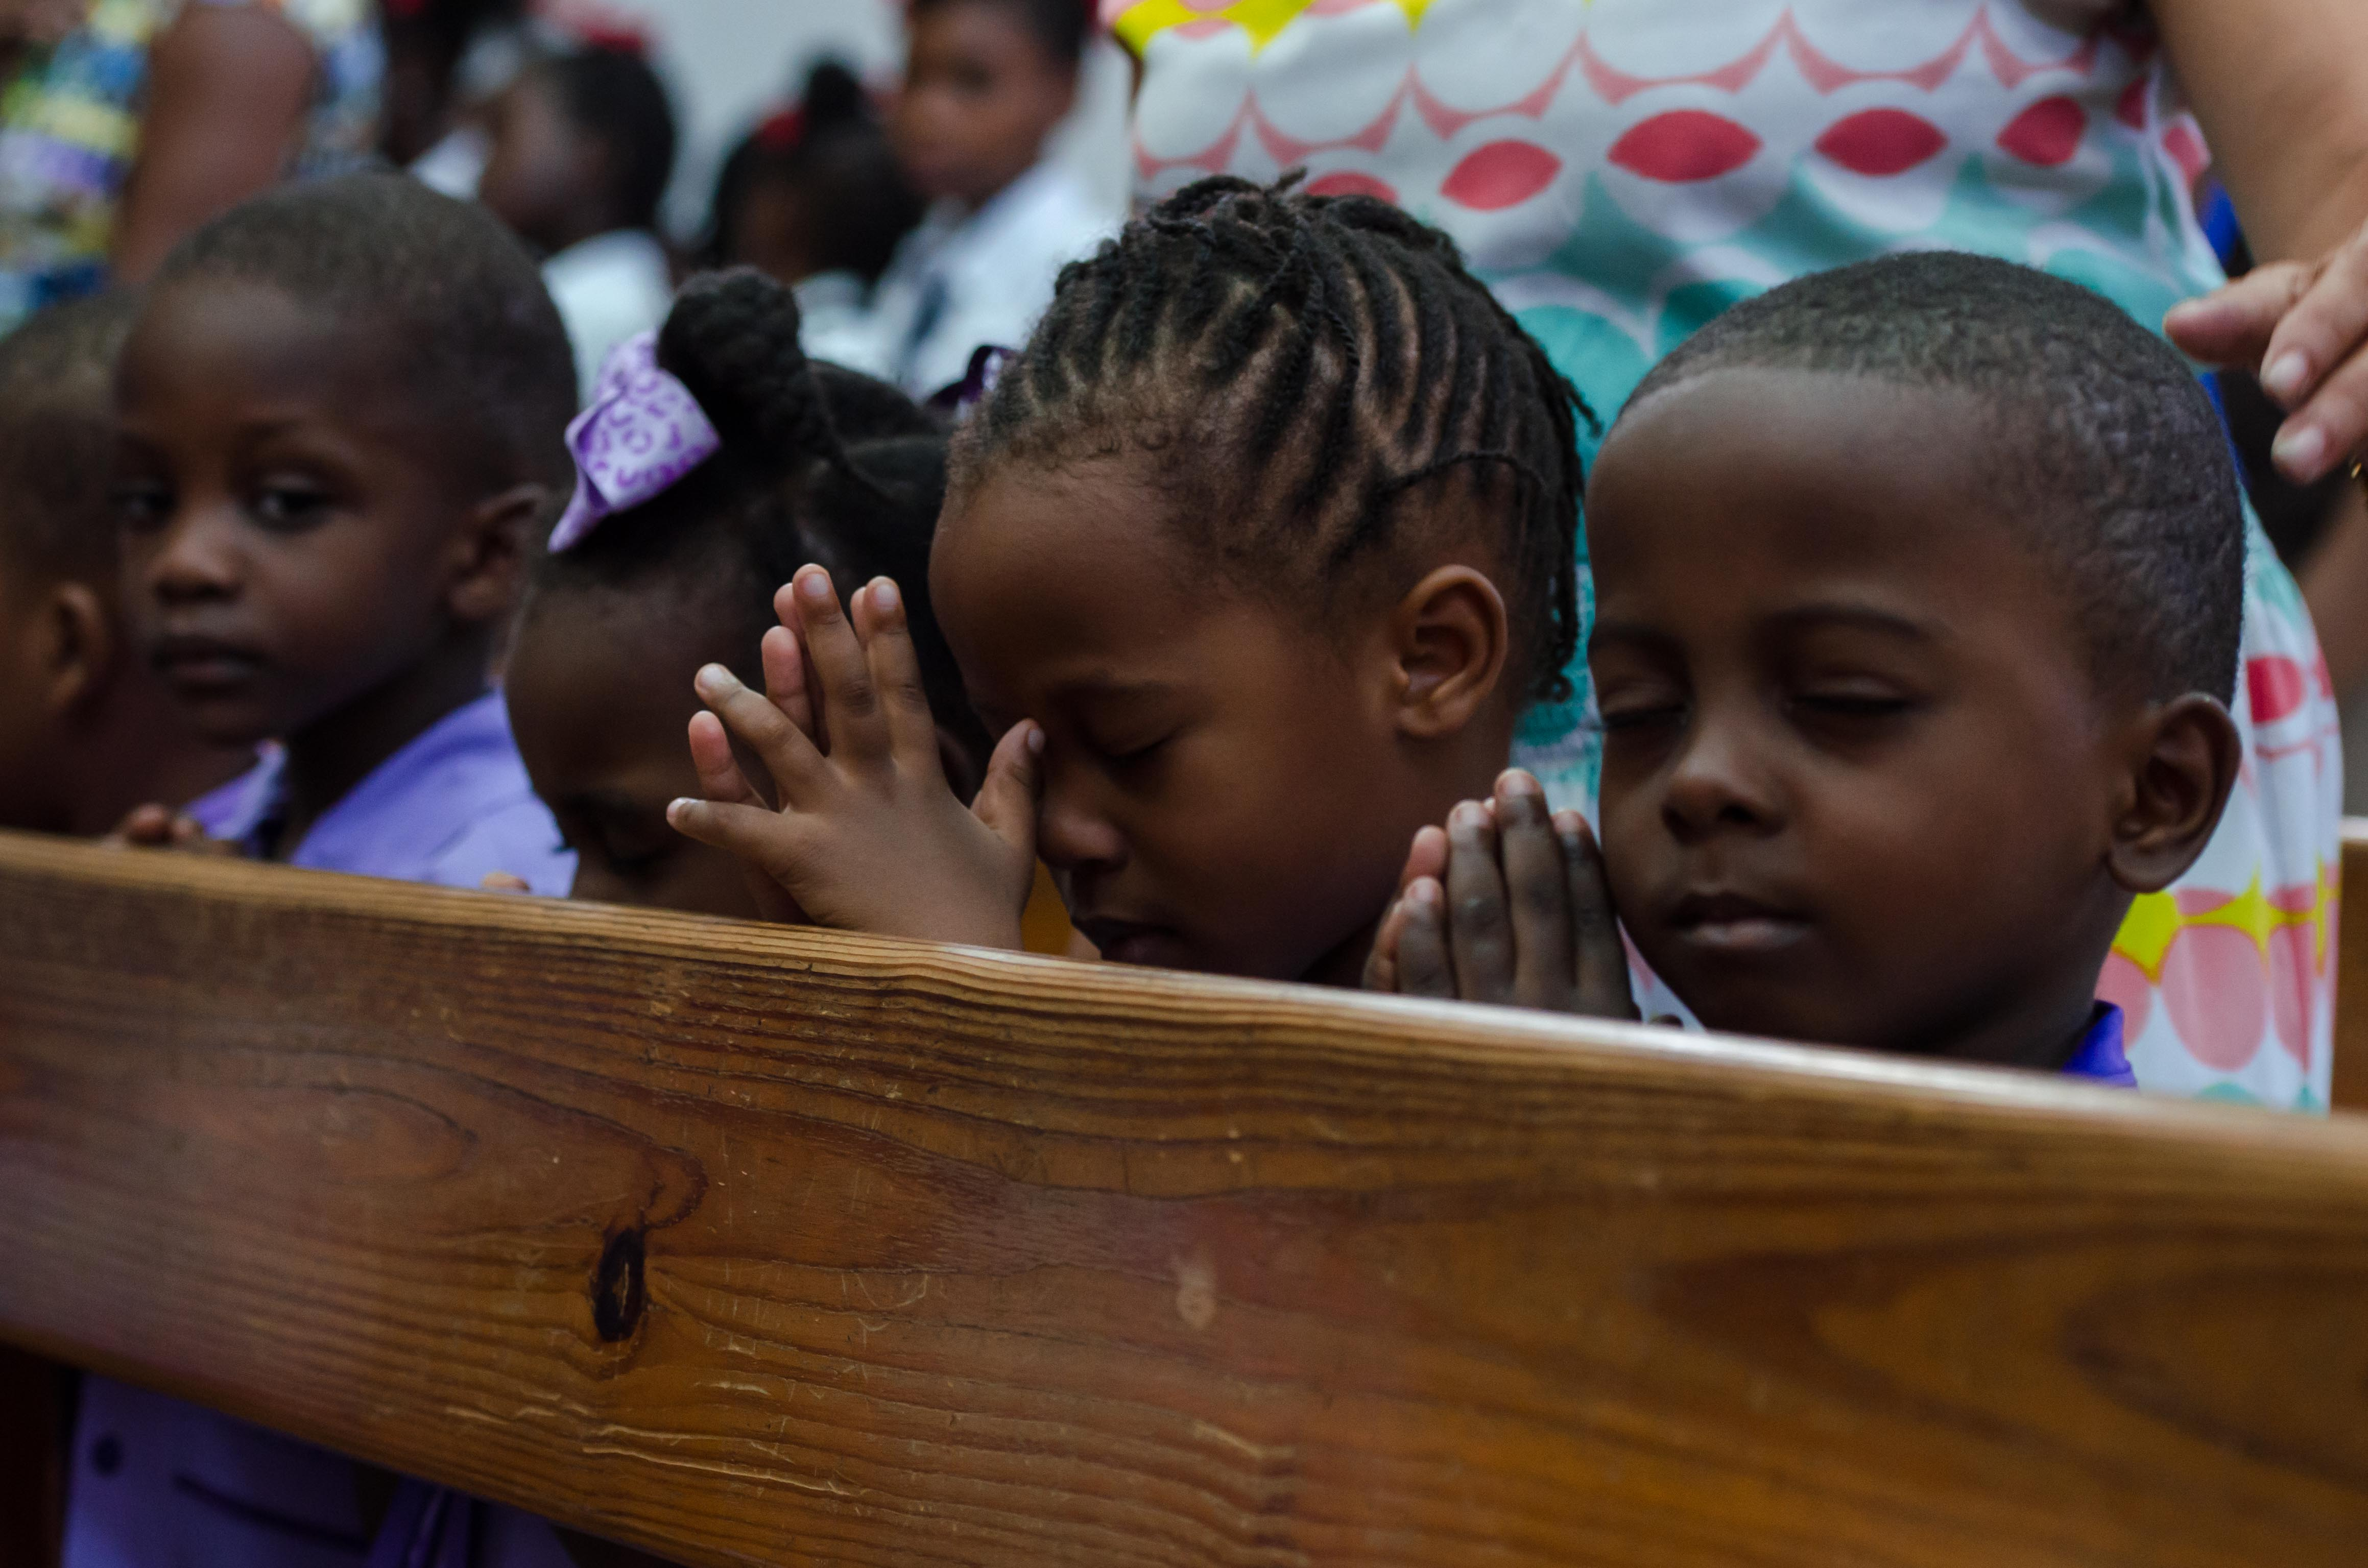 Jamaicans Urged To Rise Up Against Child Abuse - Jamaica ...